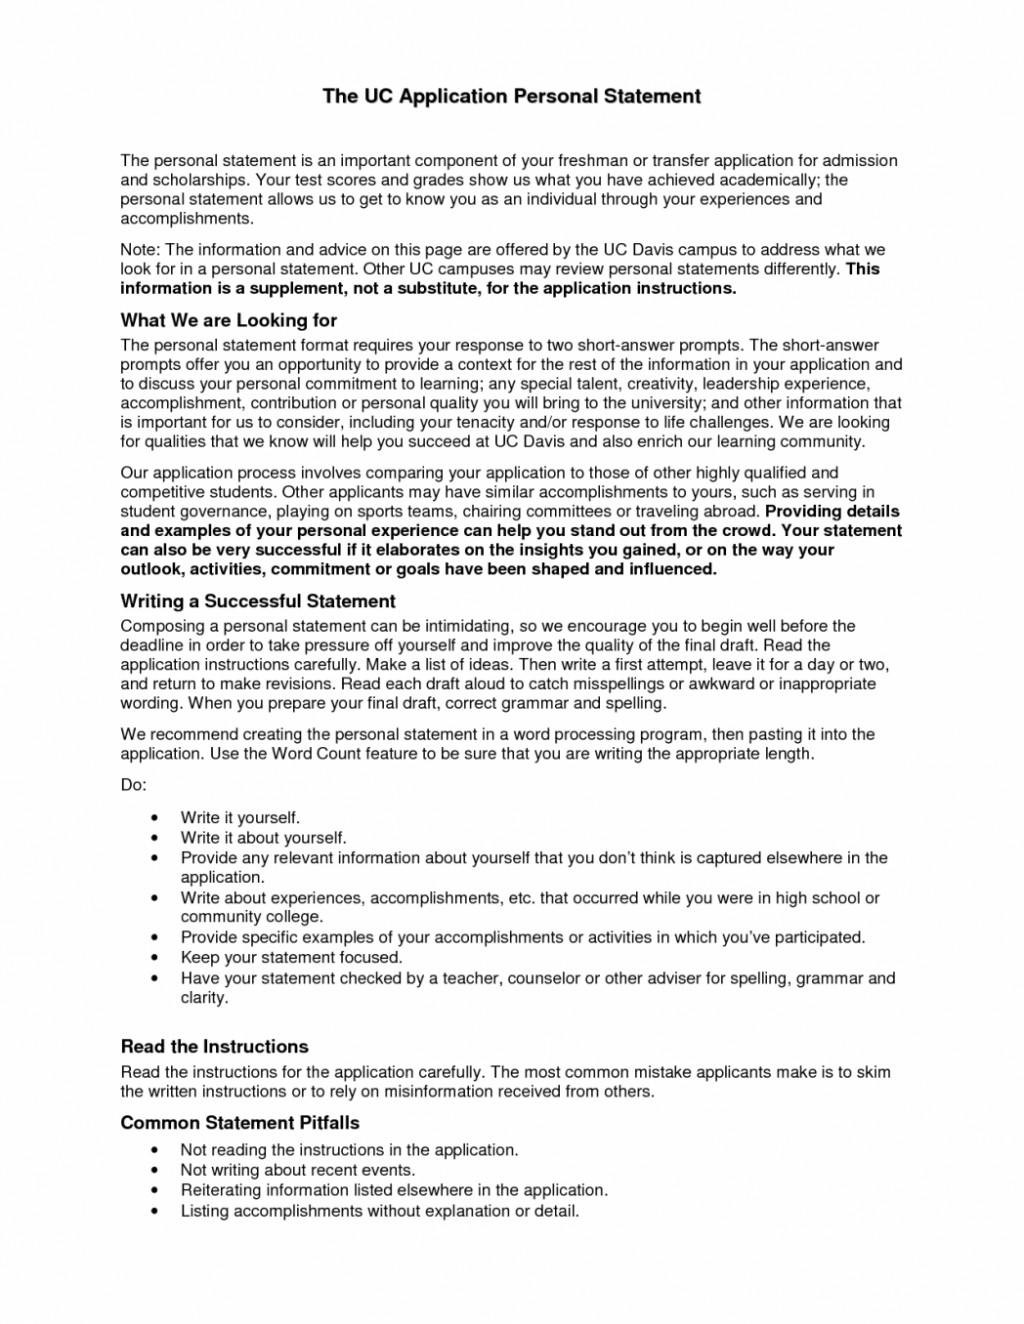 012 Who Am Issayxamples Mba Admission Tips Want To Buy Why Do You Attend This University Samples Ucla Personal Statement Template Kmc Study At Sample 1048x1356 Teacher Impressive Be A Essay Pdf Would Become Large